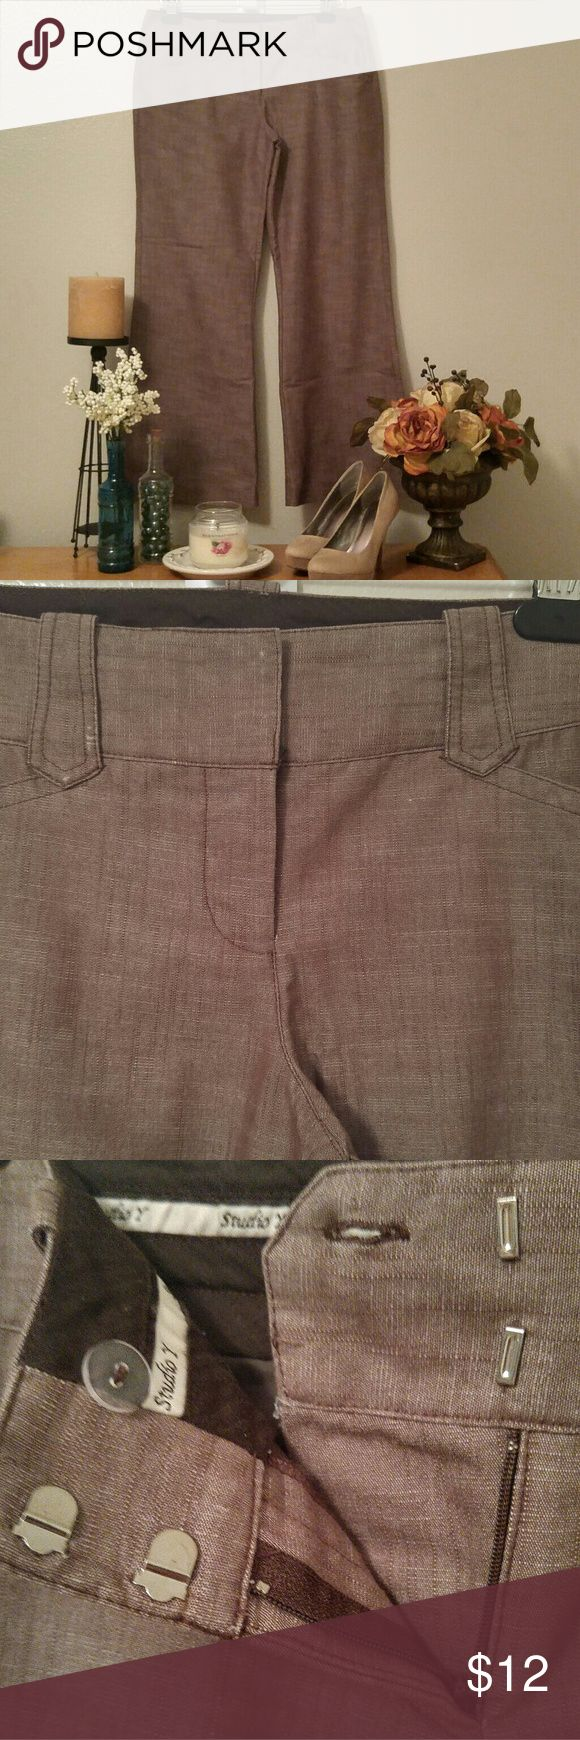 Brown Studio Y Slacks by Maurices - Size 7/8 Short Studio Y textured brown slacks sold by Maurices. Low cut waist, with slightly flared leg. Size 7/8 short. Great condition, only worn a few times. Studio Y Pants Boot Cut & Flare